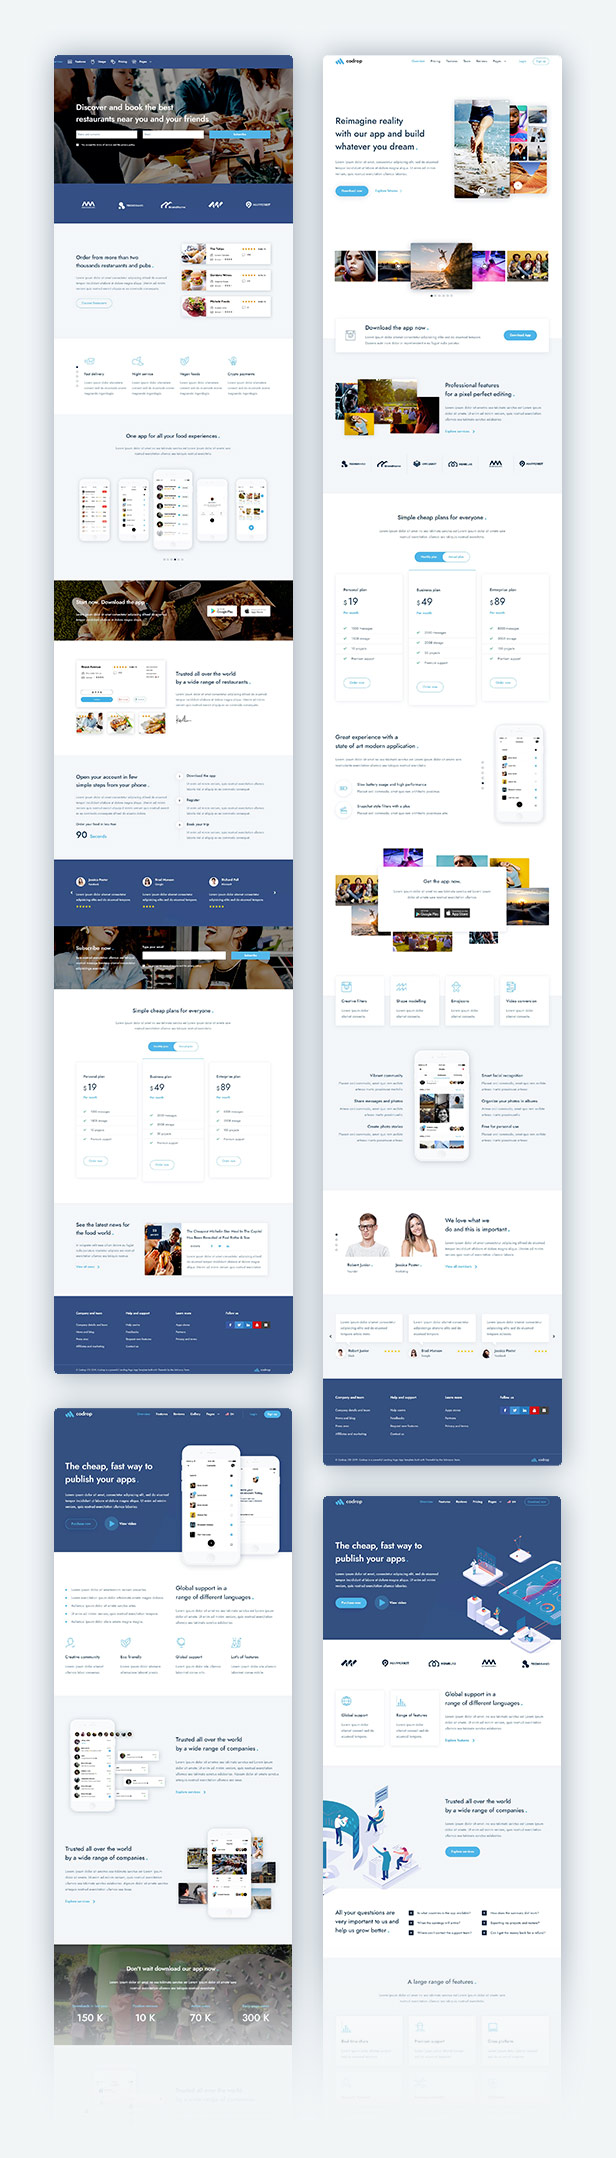 Codrop - App Landing Page And One Page Template - 1